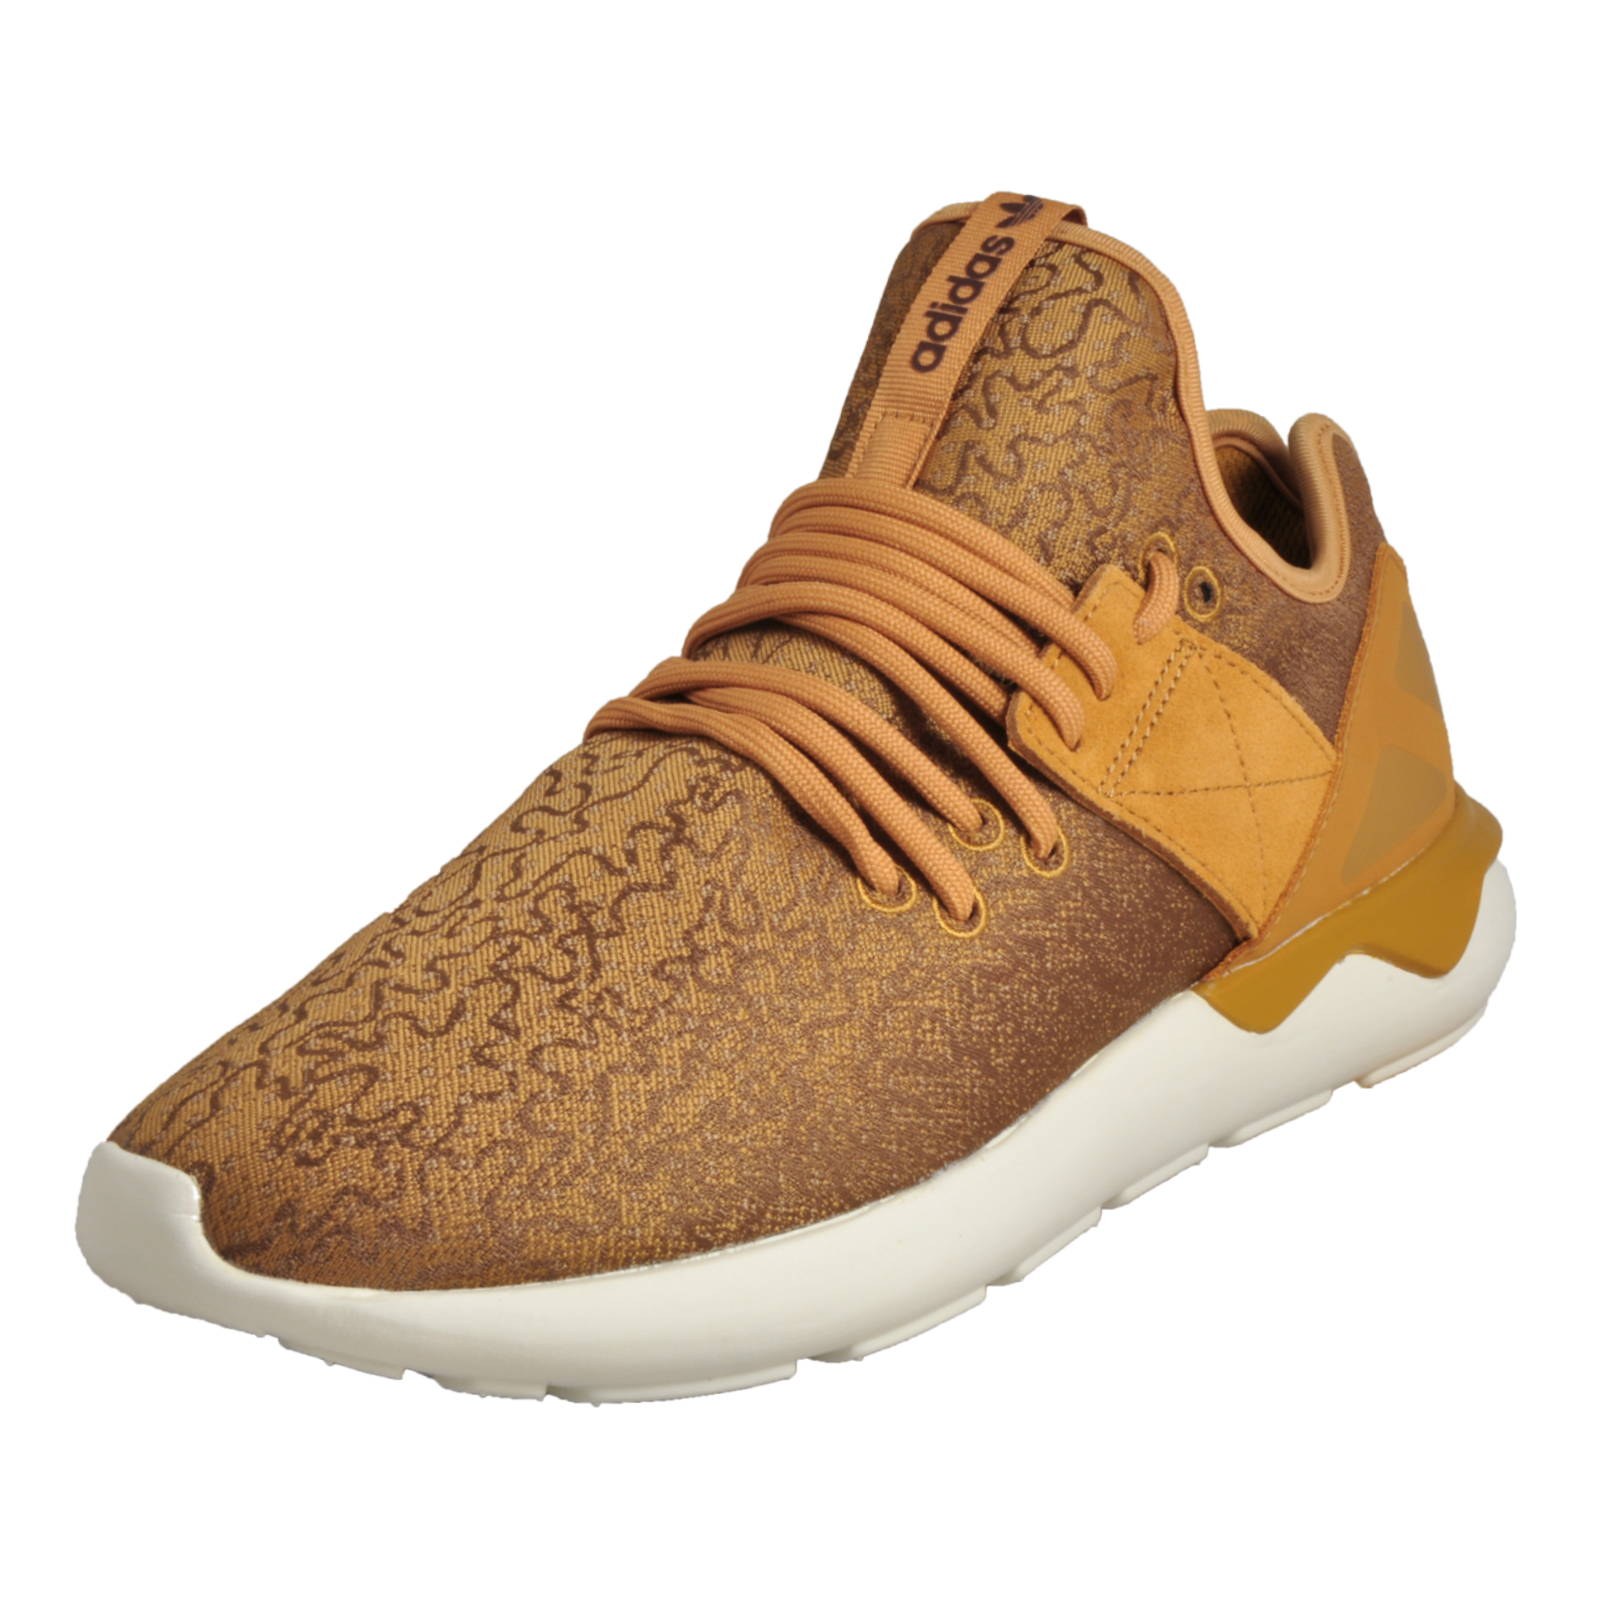 cheap for discount 89e27 d8588 Adidas Originals Tubular Runner Mens Classic Casual Vintage Retro Trainers